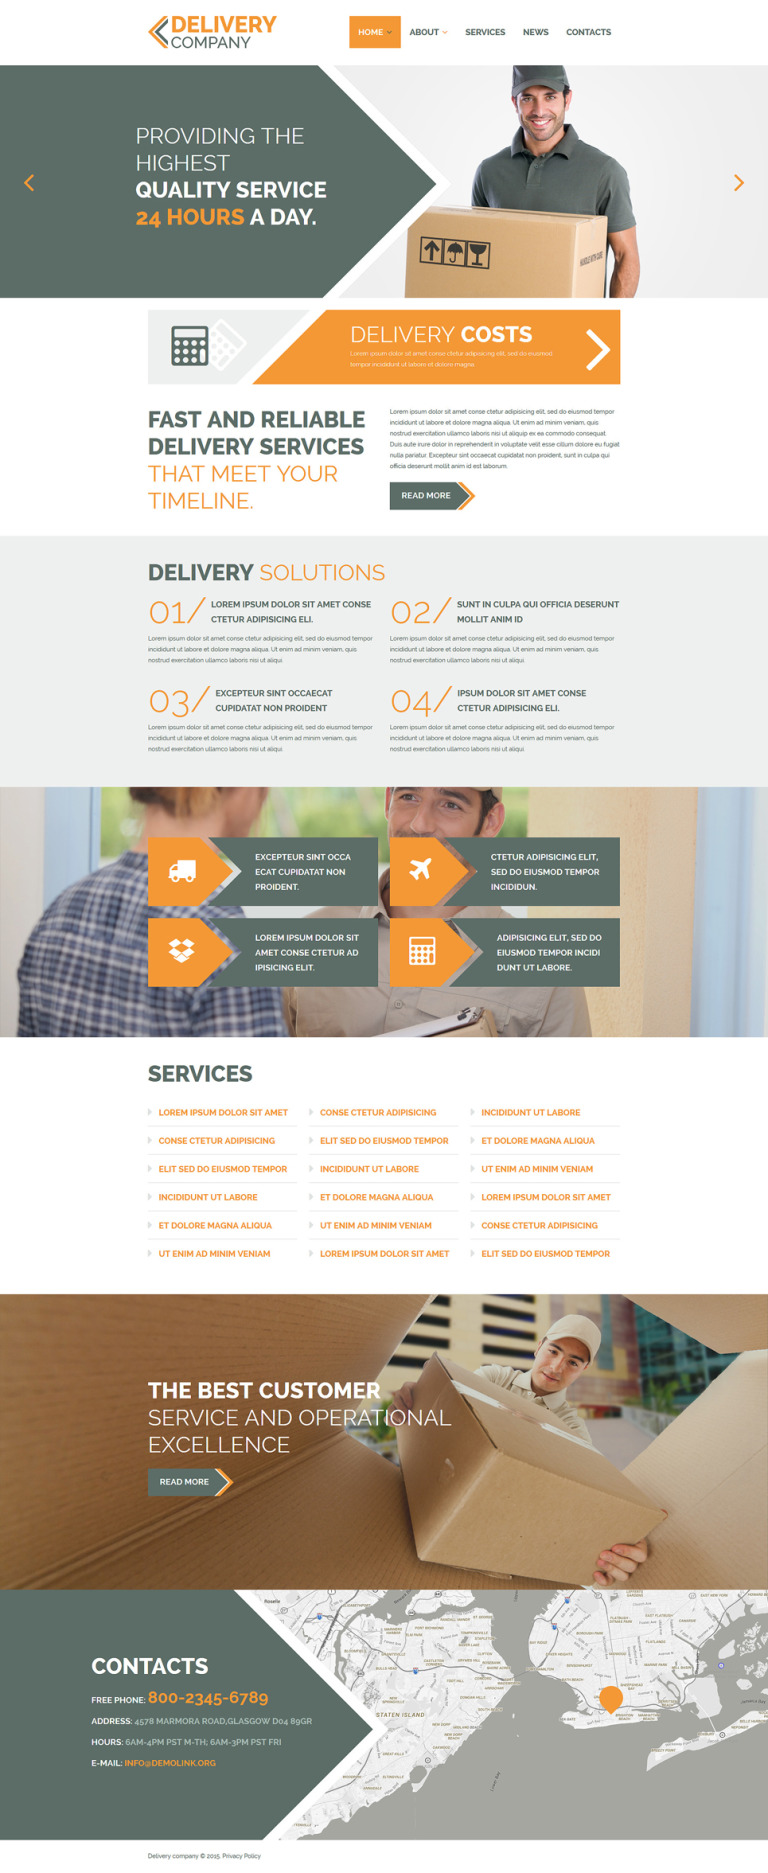 Delivery Company Joomla Template New Screenshots BIG